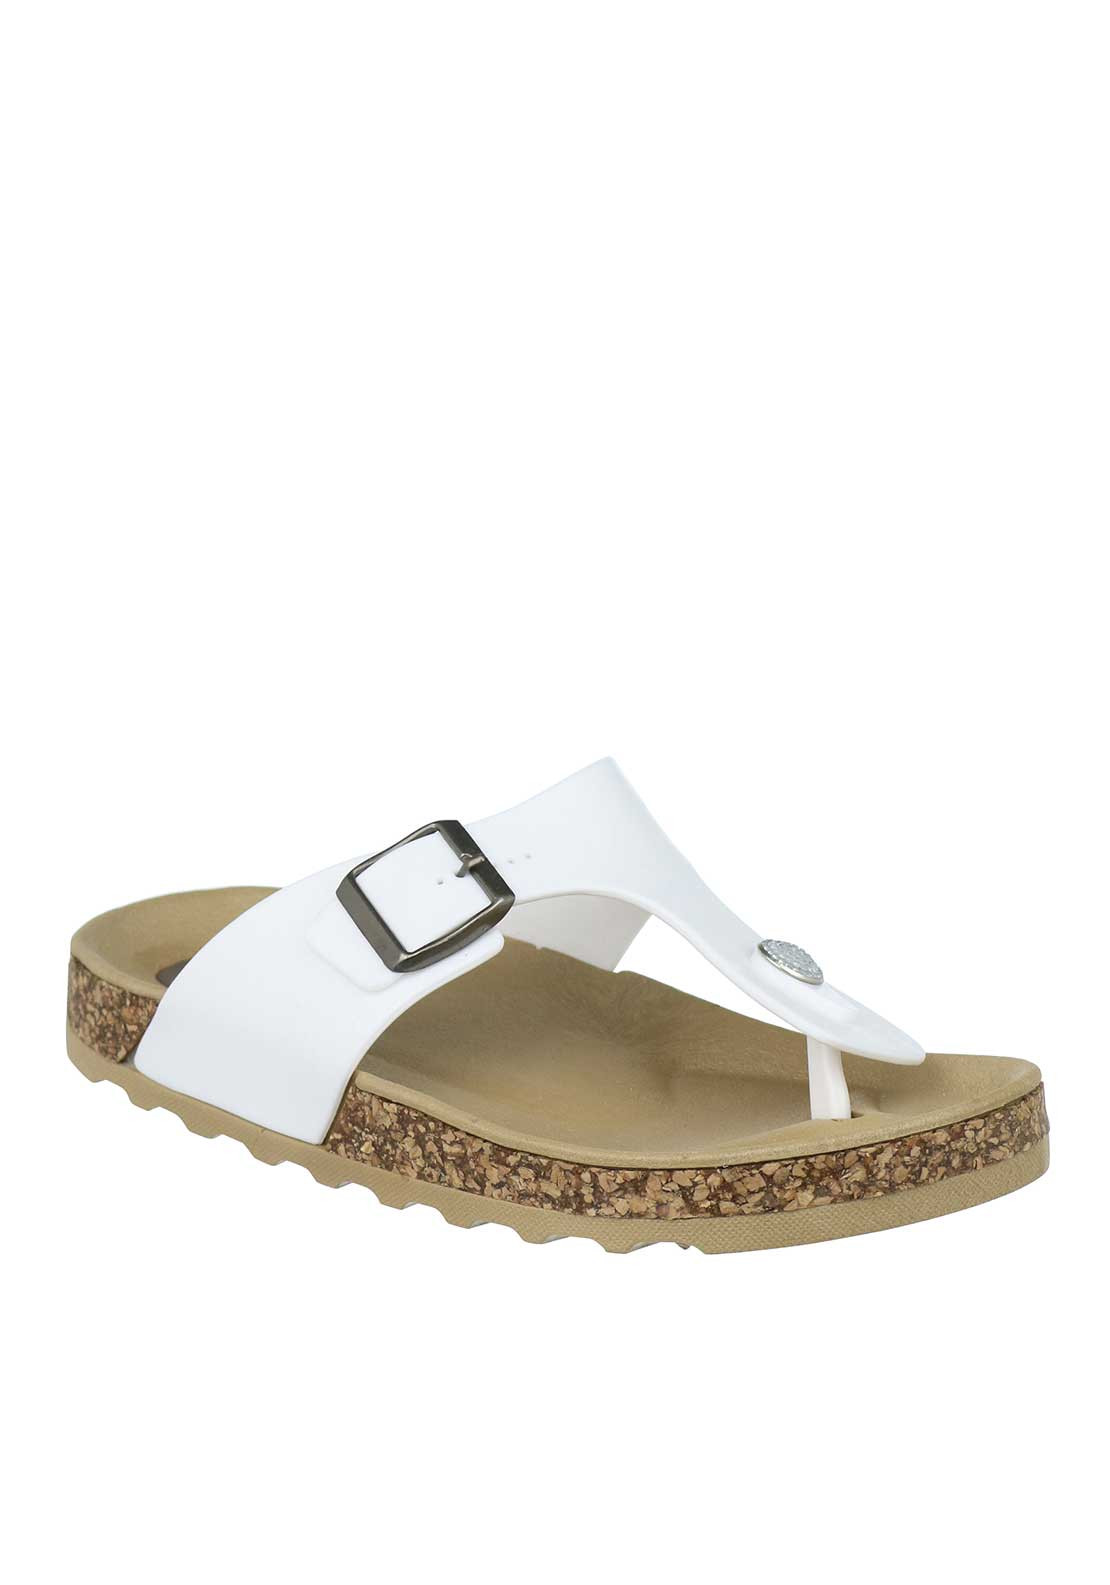 Lelli Kelly Toe Post Sorbetto Slip on Sandals, Coconut White